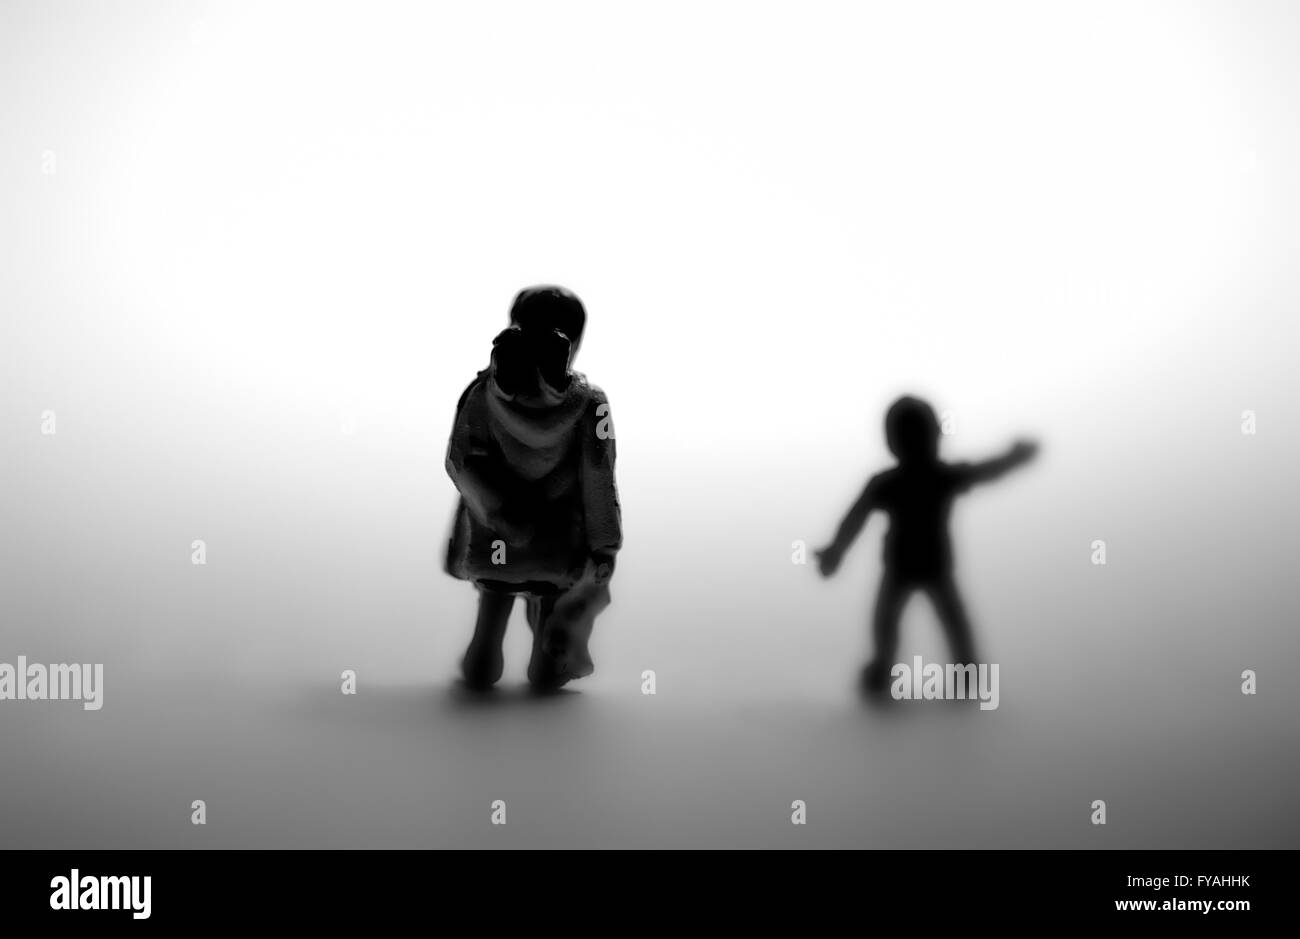 Two young children in silhouette one reaching out for help. - Stock Image